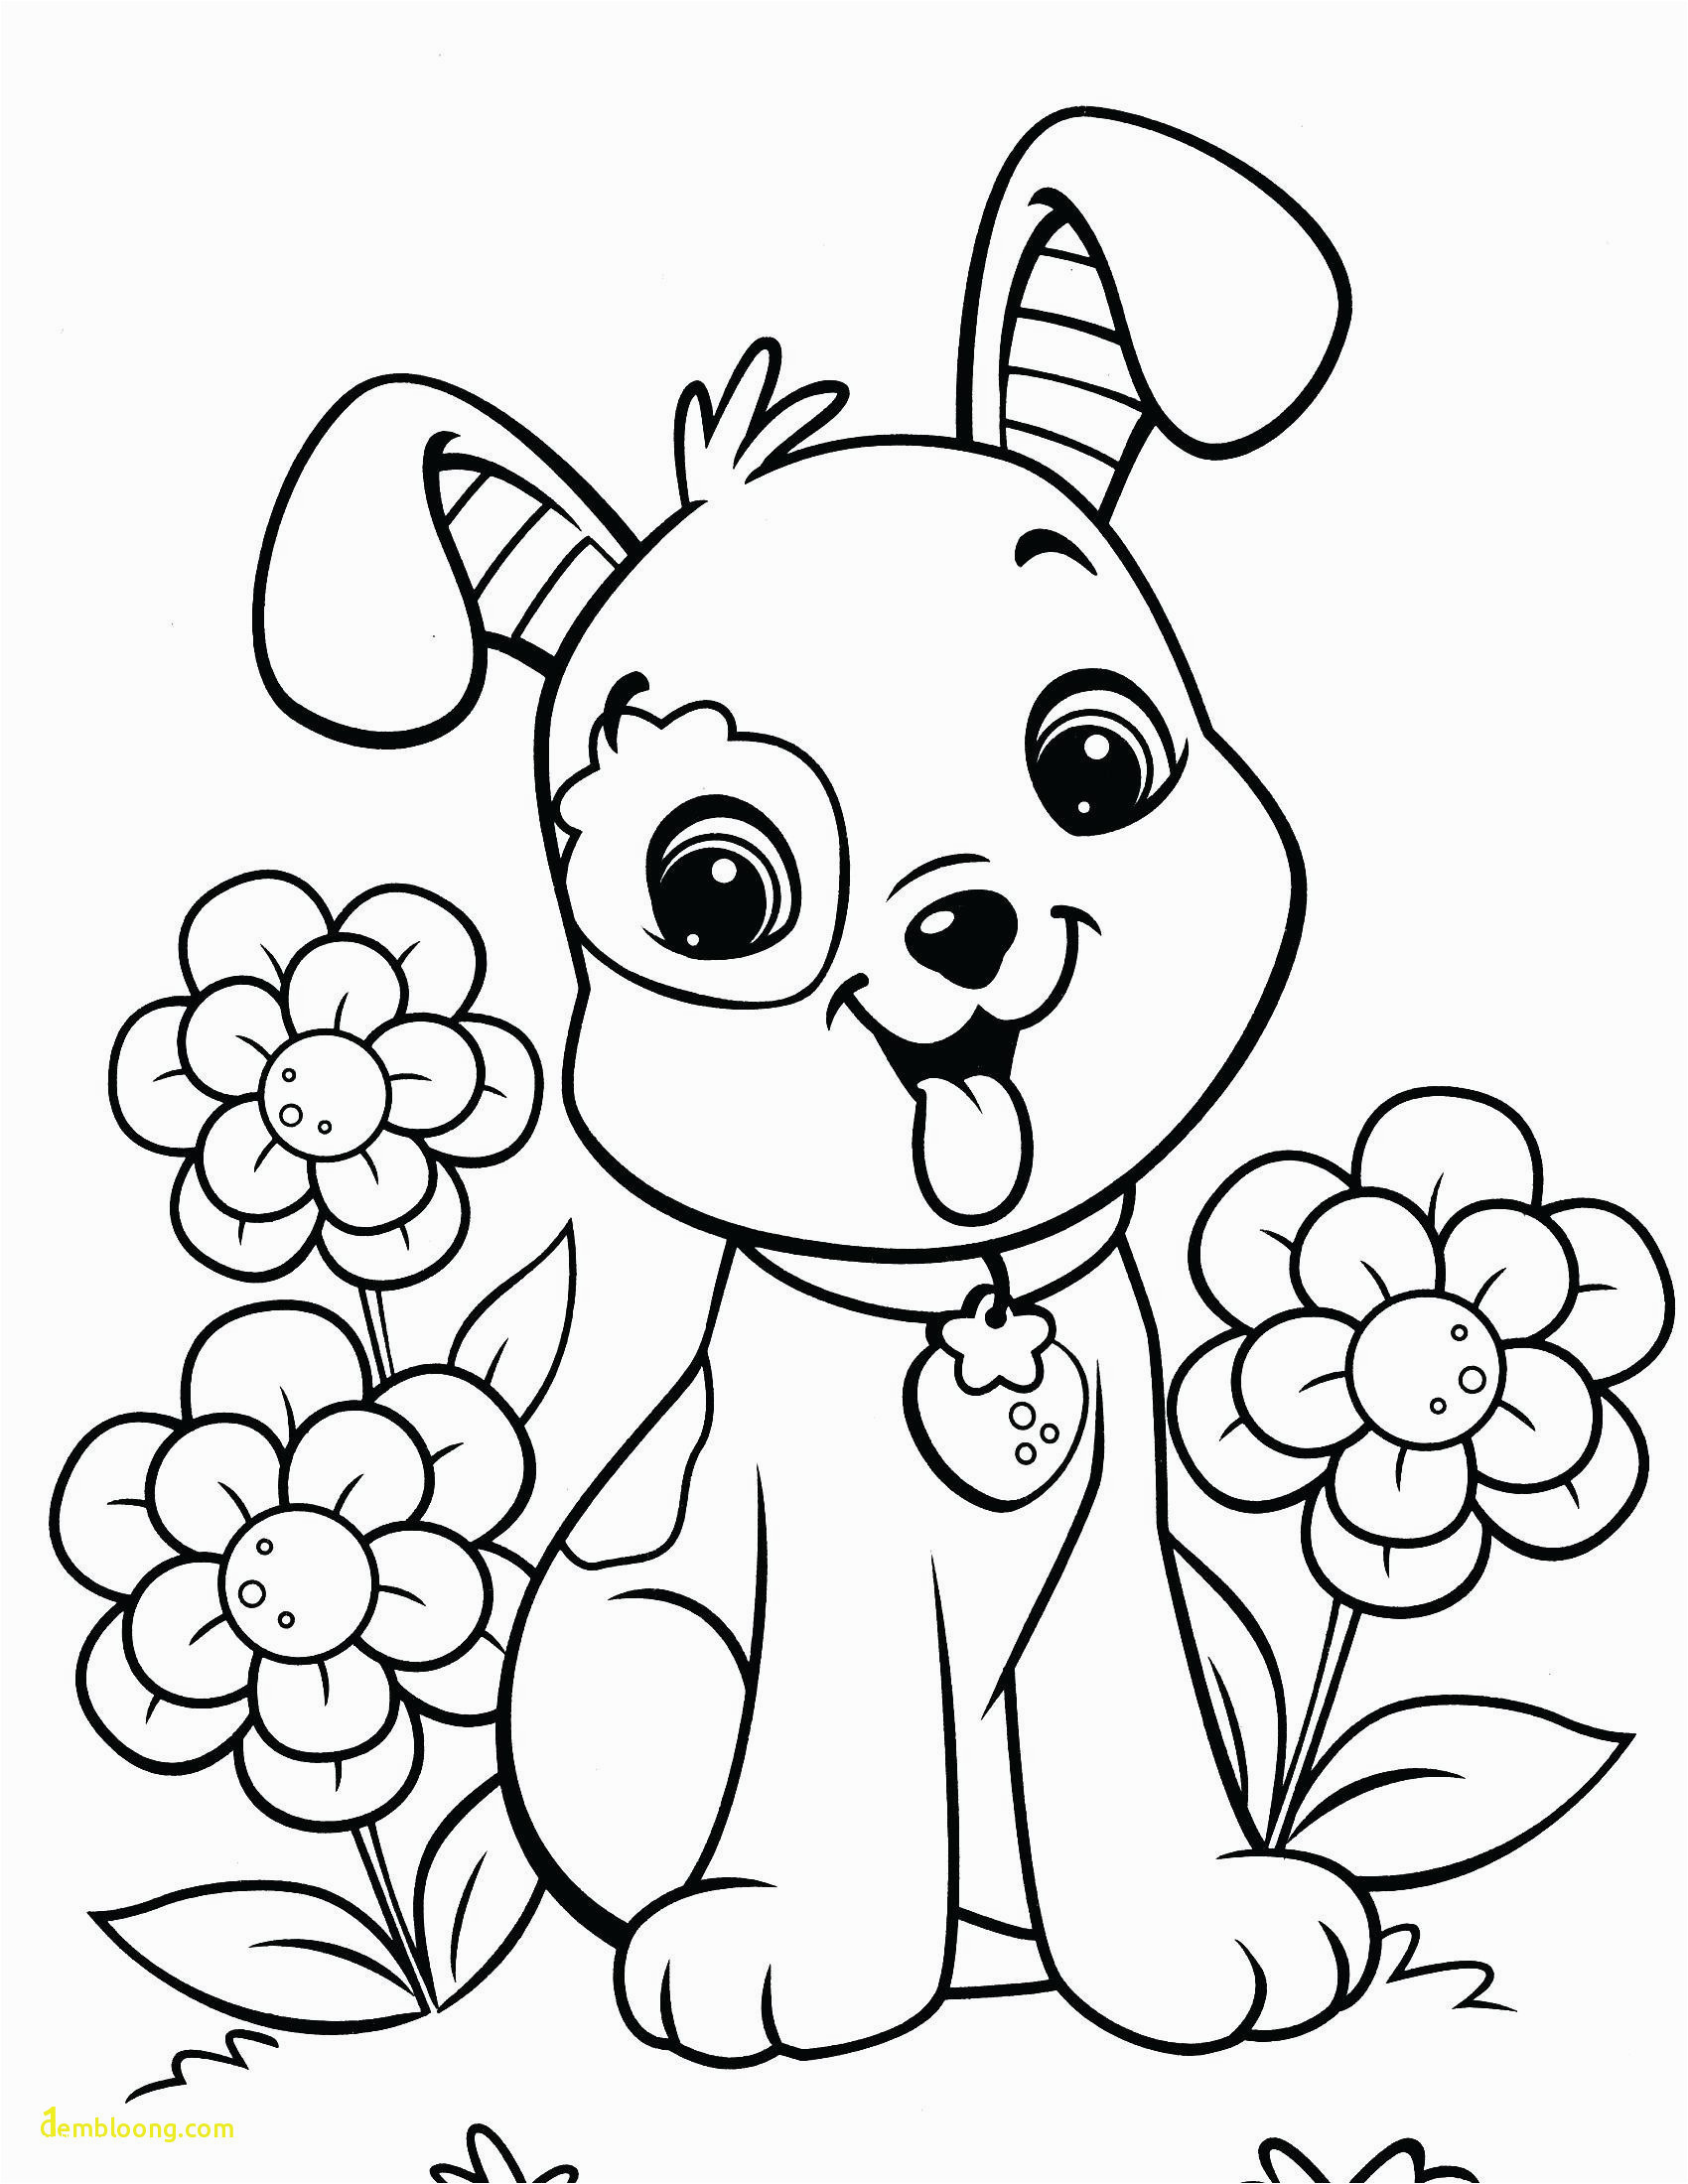 free printable coloring pages for toddlers inspirational coloring pages free printable animal coloring pages of free printable coloring pages for toddlers